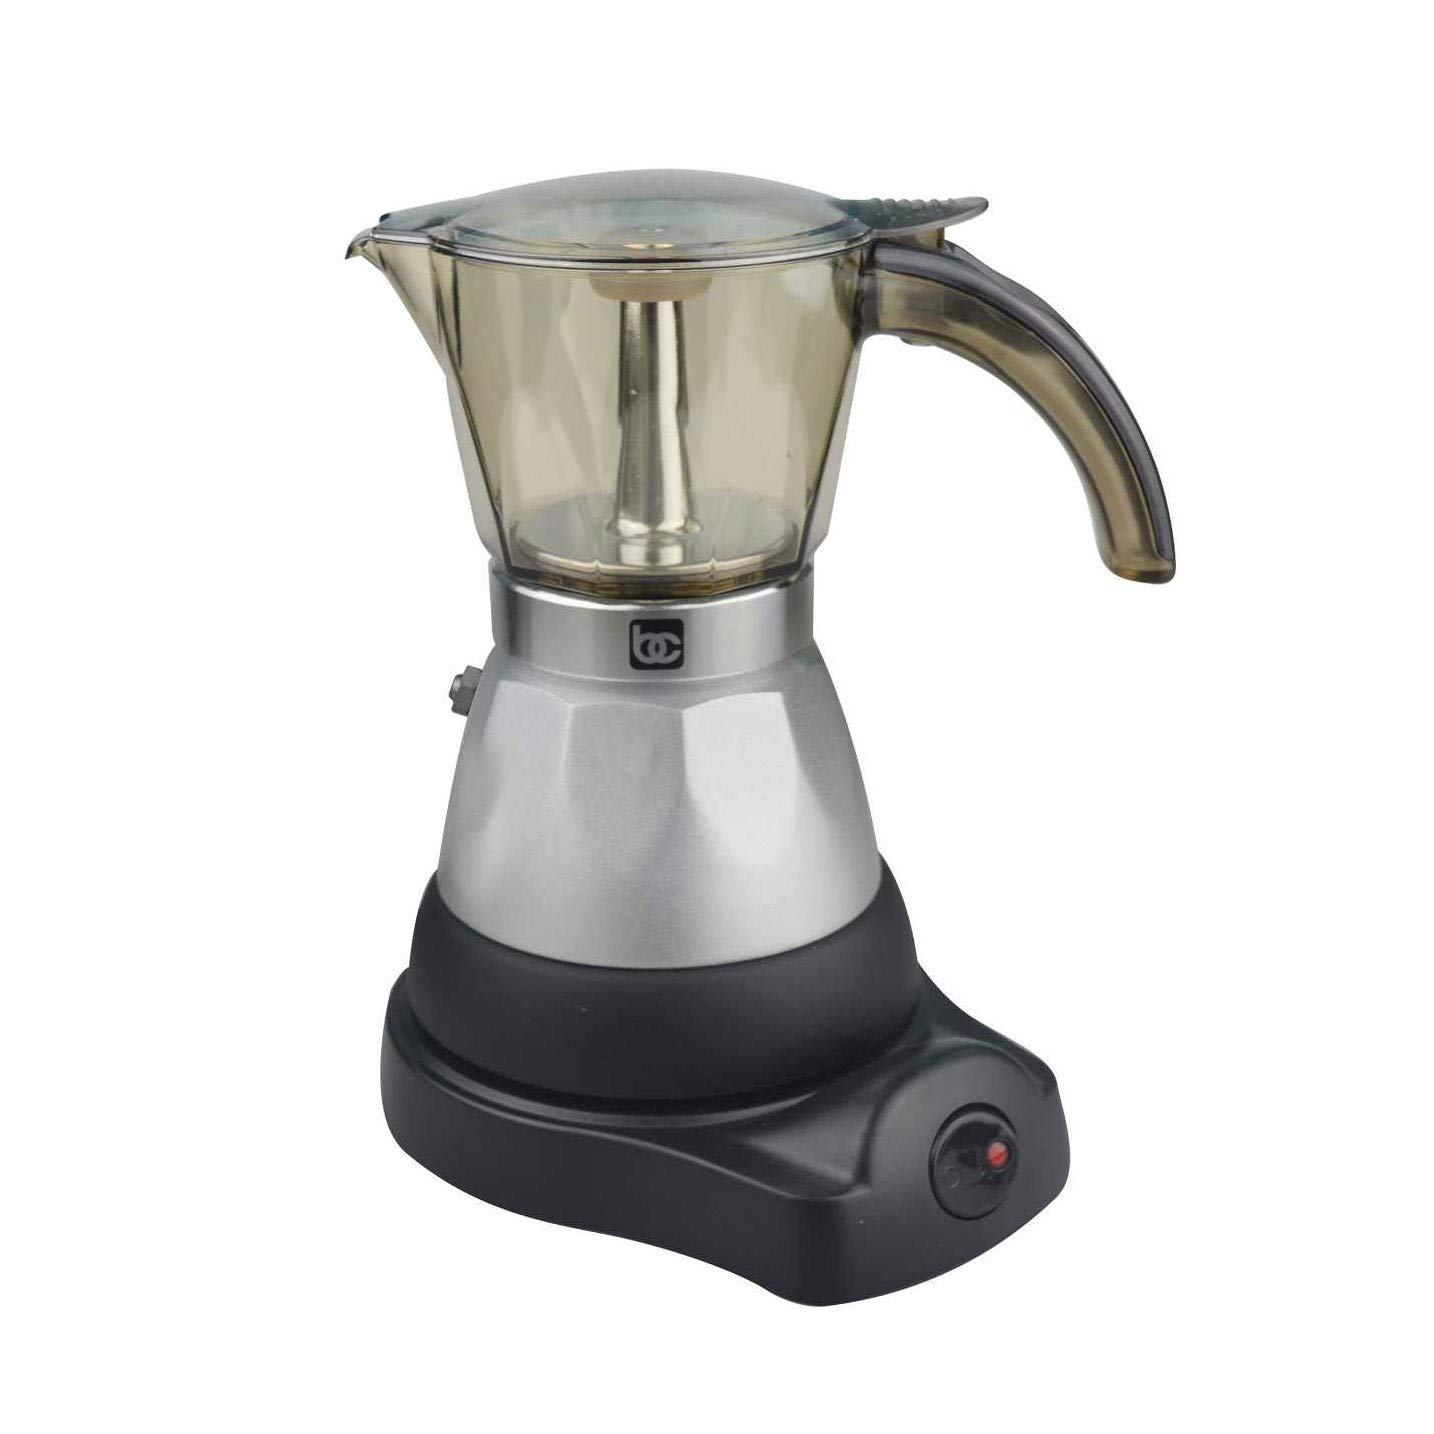 Bene Casa Espresso Coffee Maker, 3 Cup